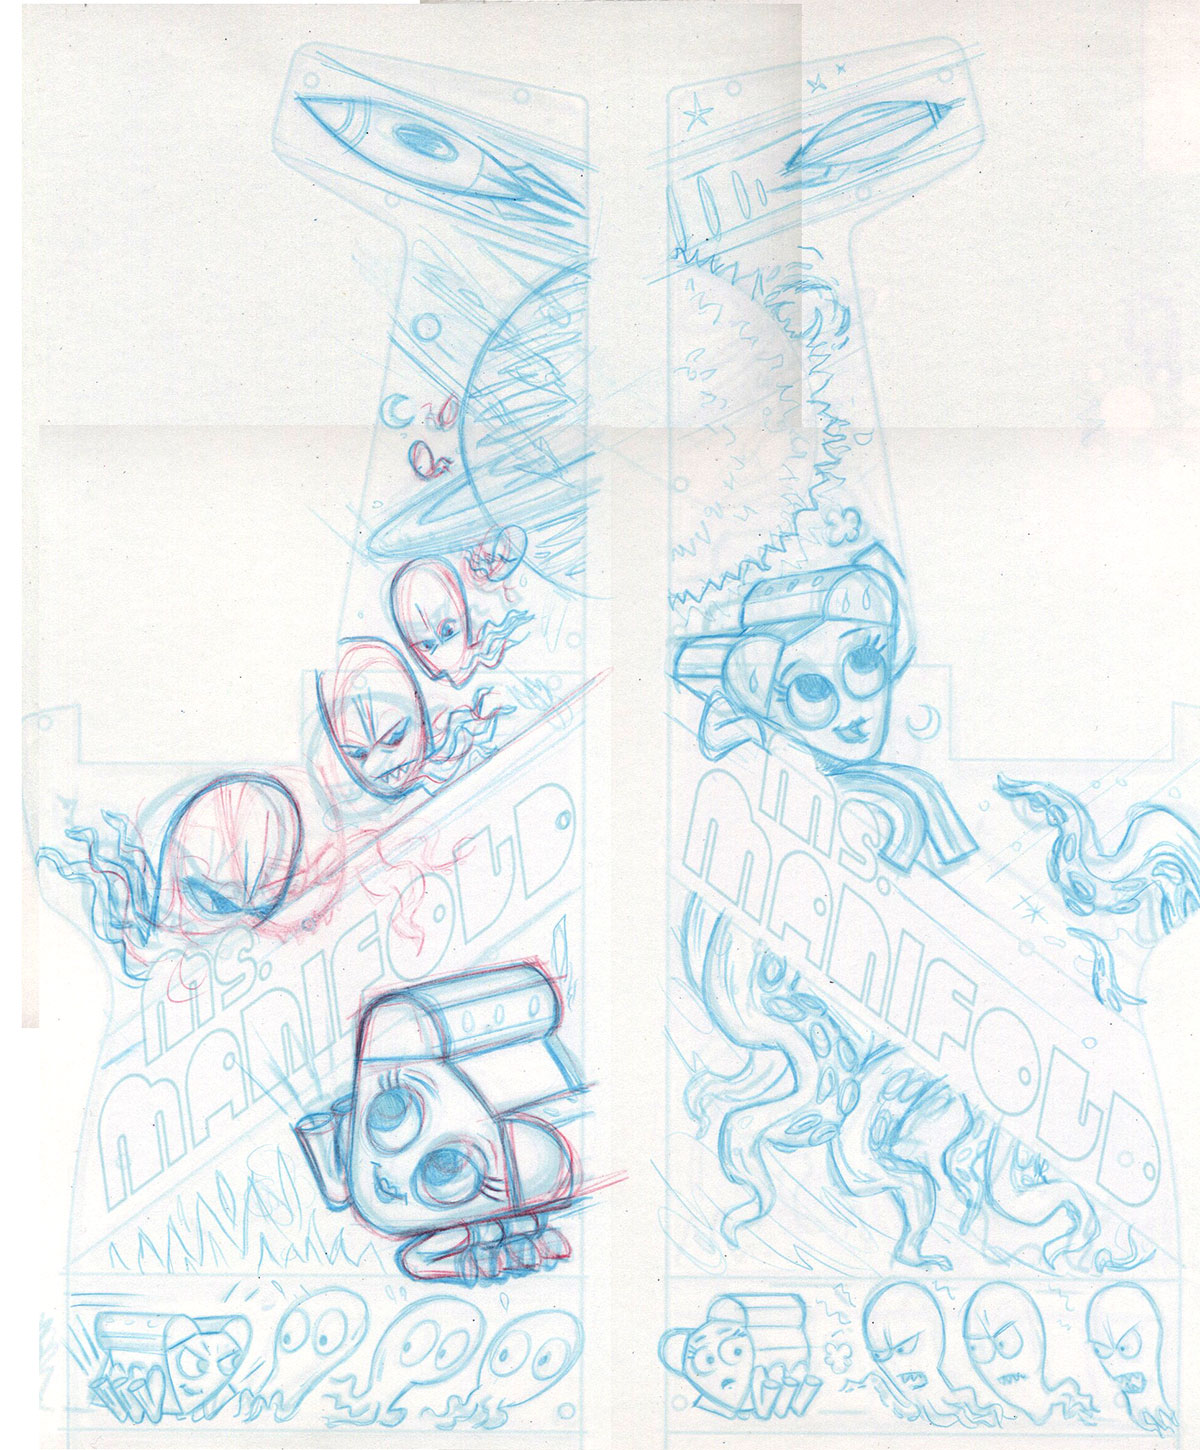 Tighter pencil layouts